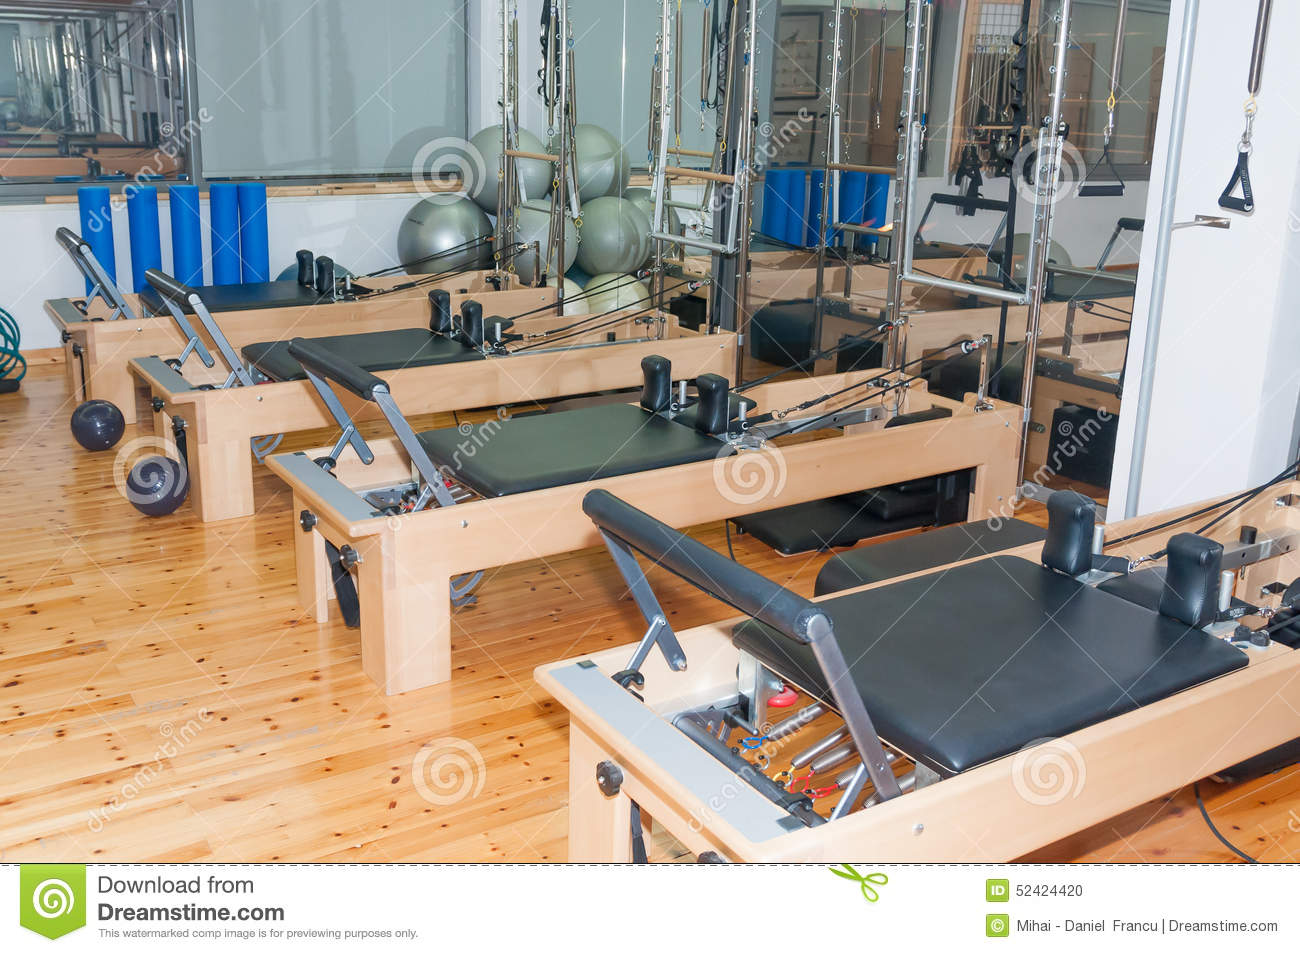 Pilates room stock photo. Image of building, sports, room - 52422682